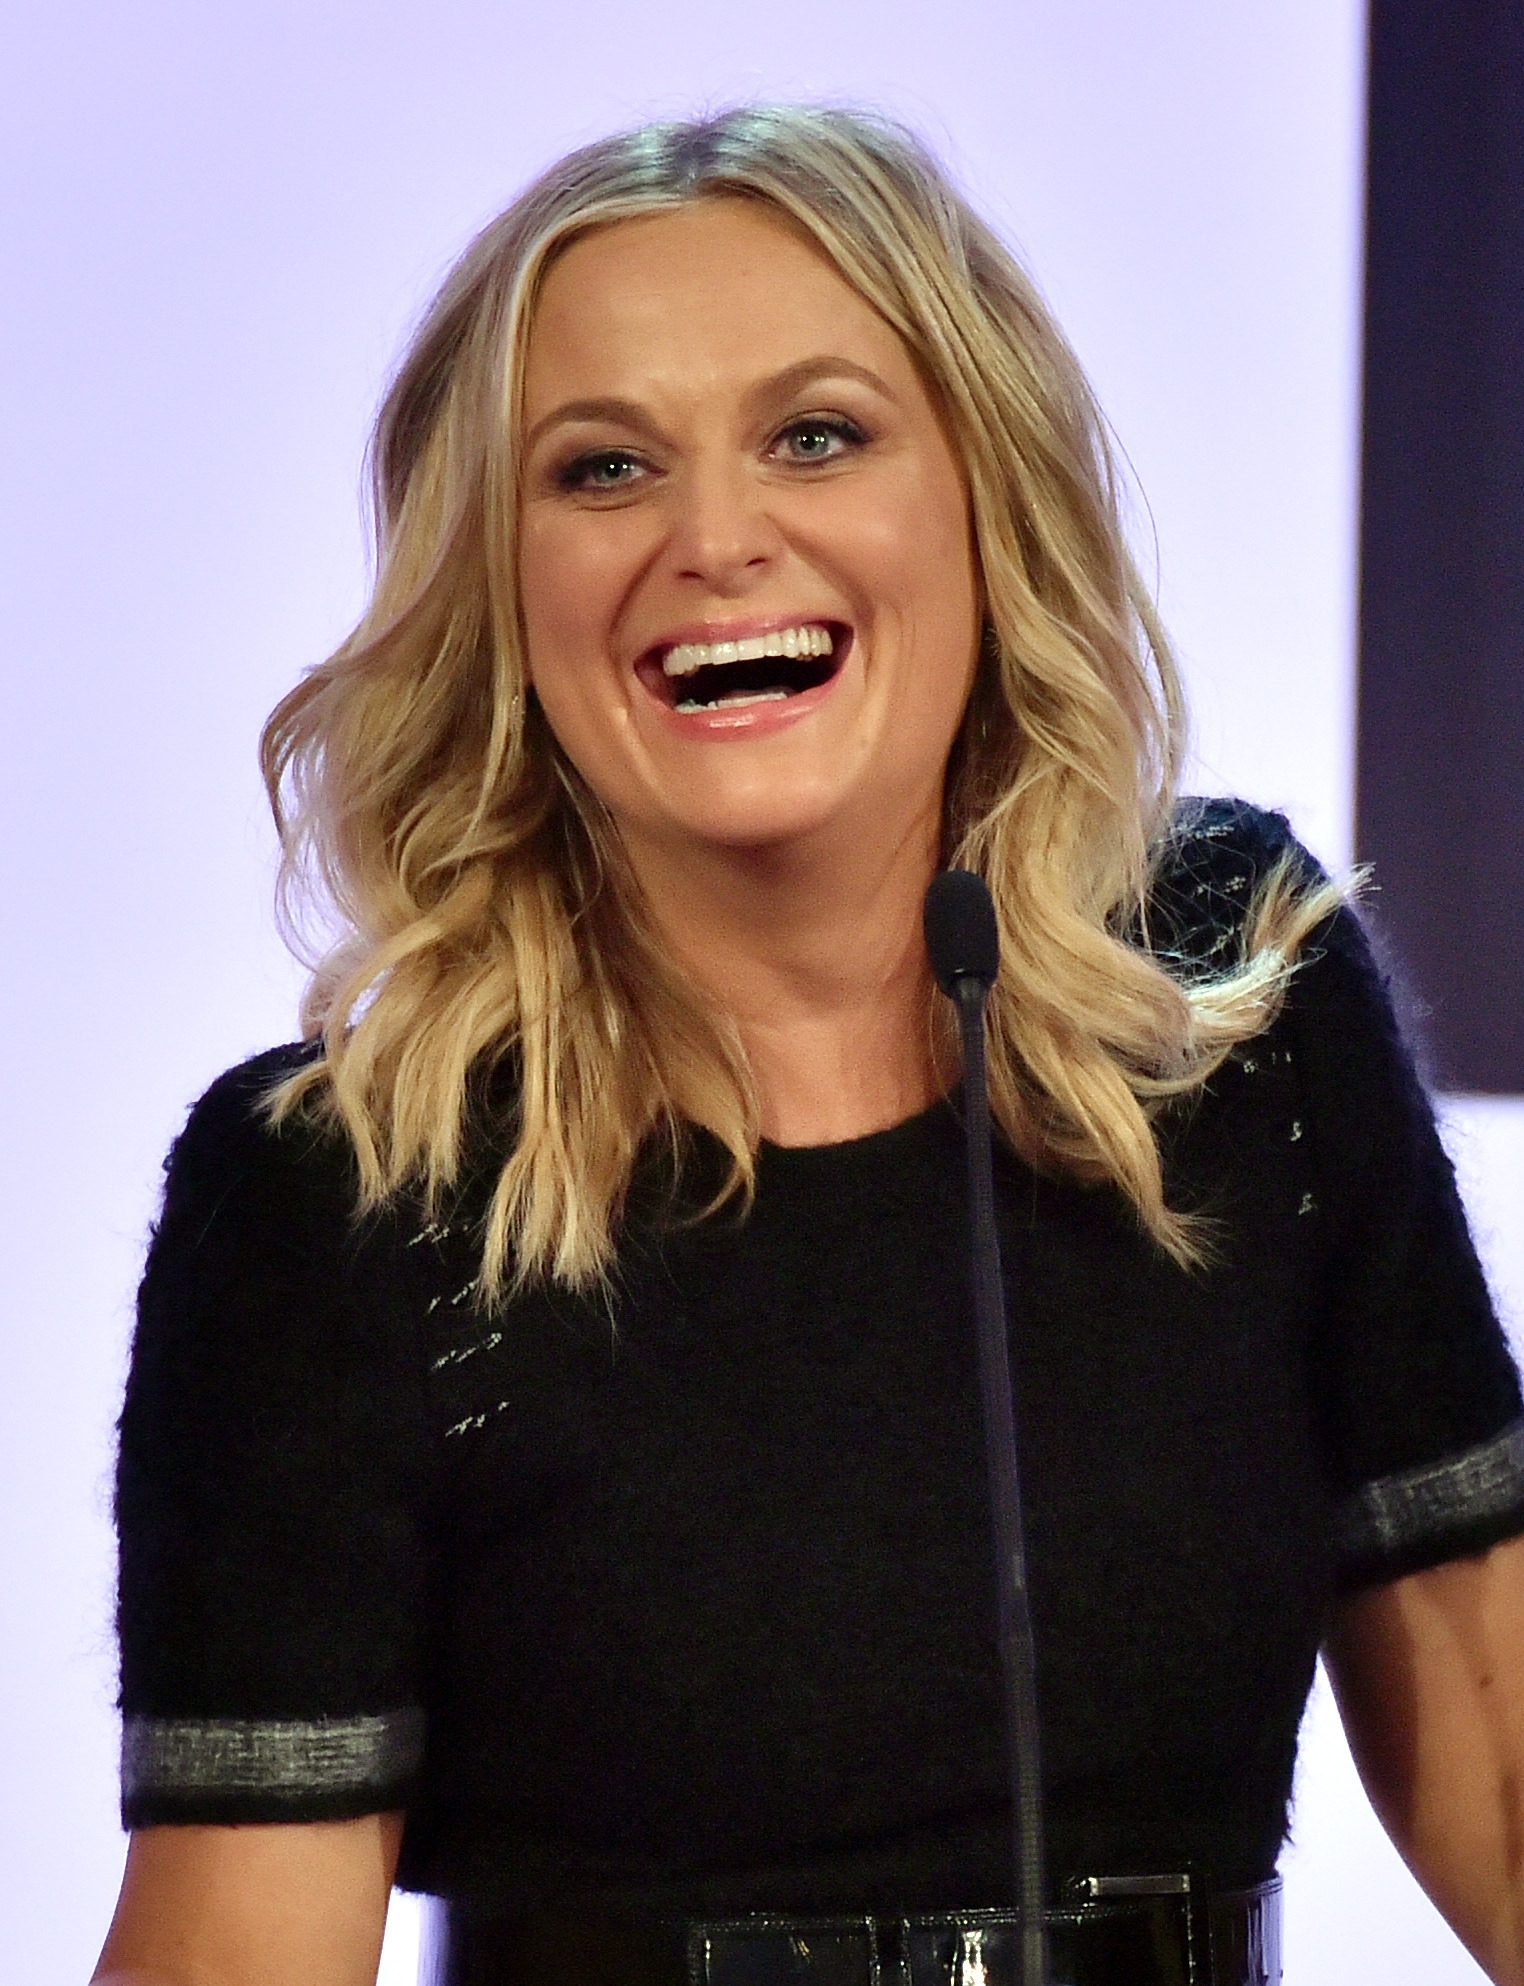 Amy Poehler's book feels like someone convinced her it would be a good idea and she reluctantly agreed.